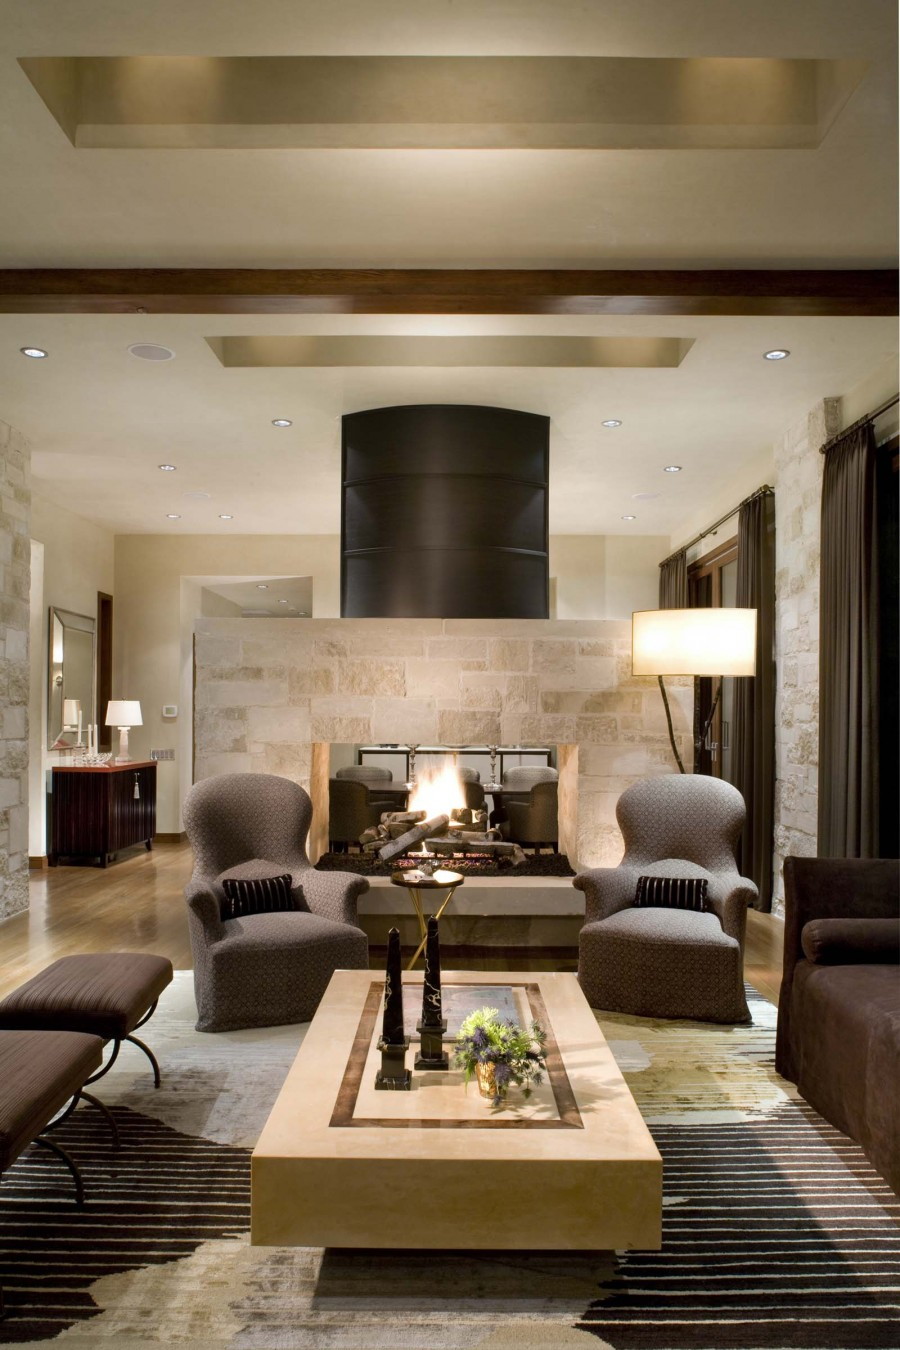 16 fabulous earth tones living room designs decoholic Design ideas living room